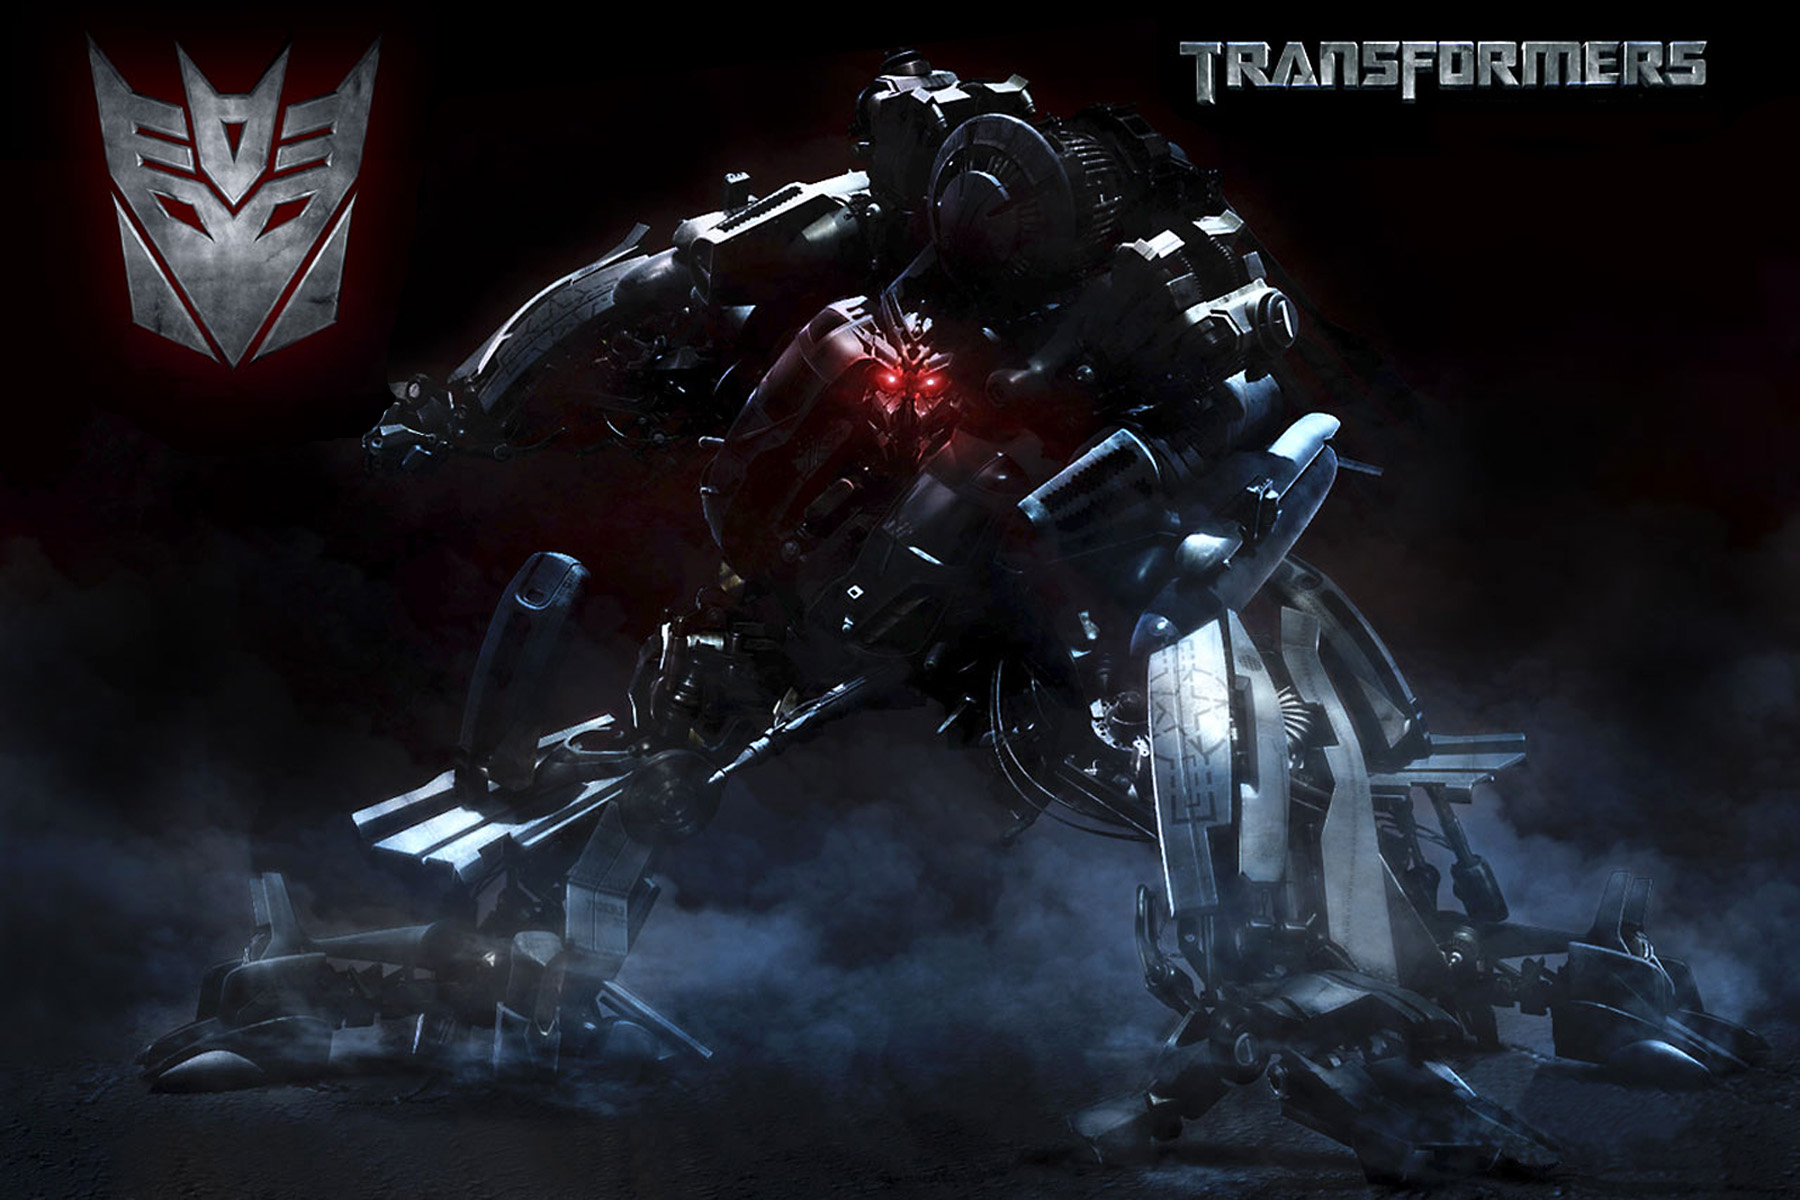 Blackout Transformers Wallpaper Printable Transformers Movie